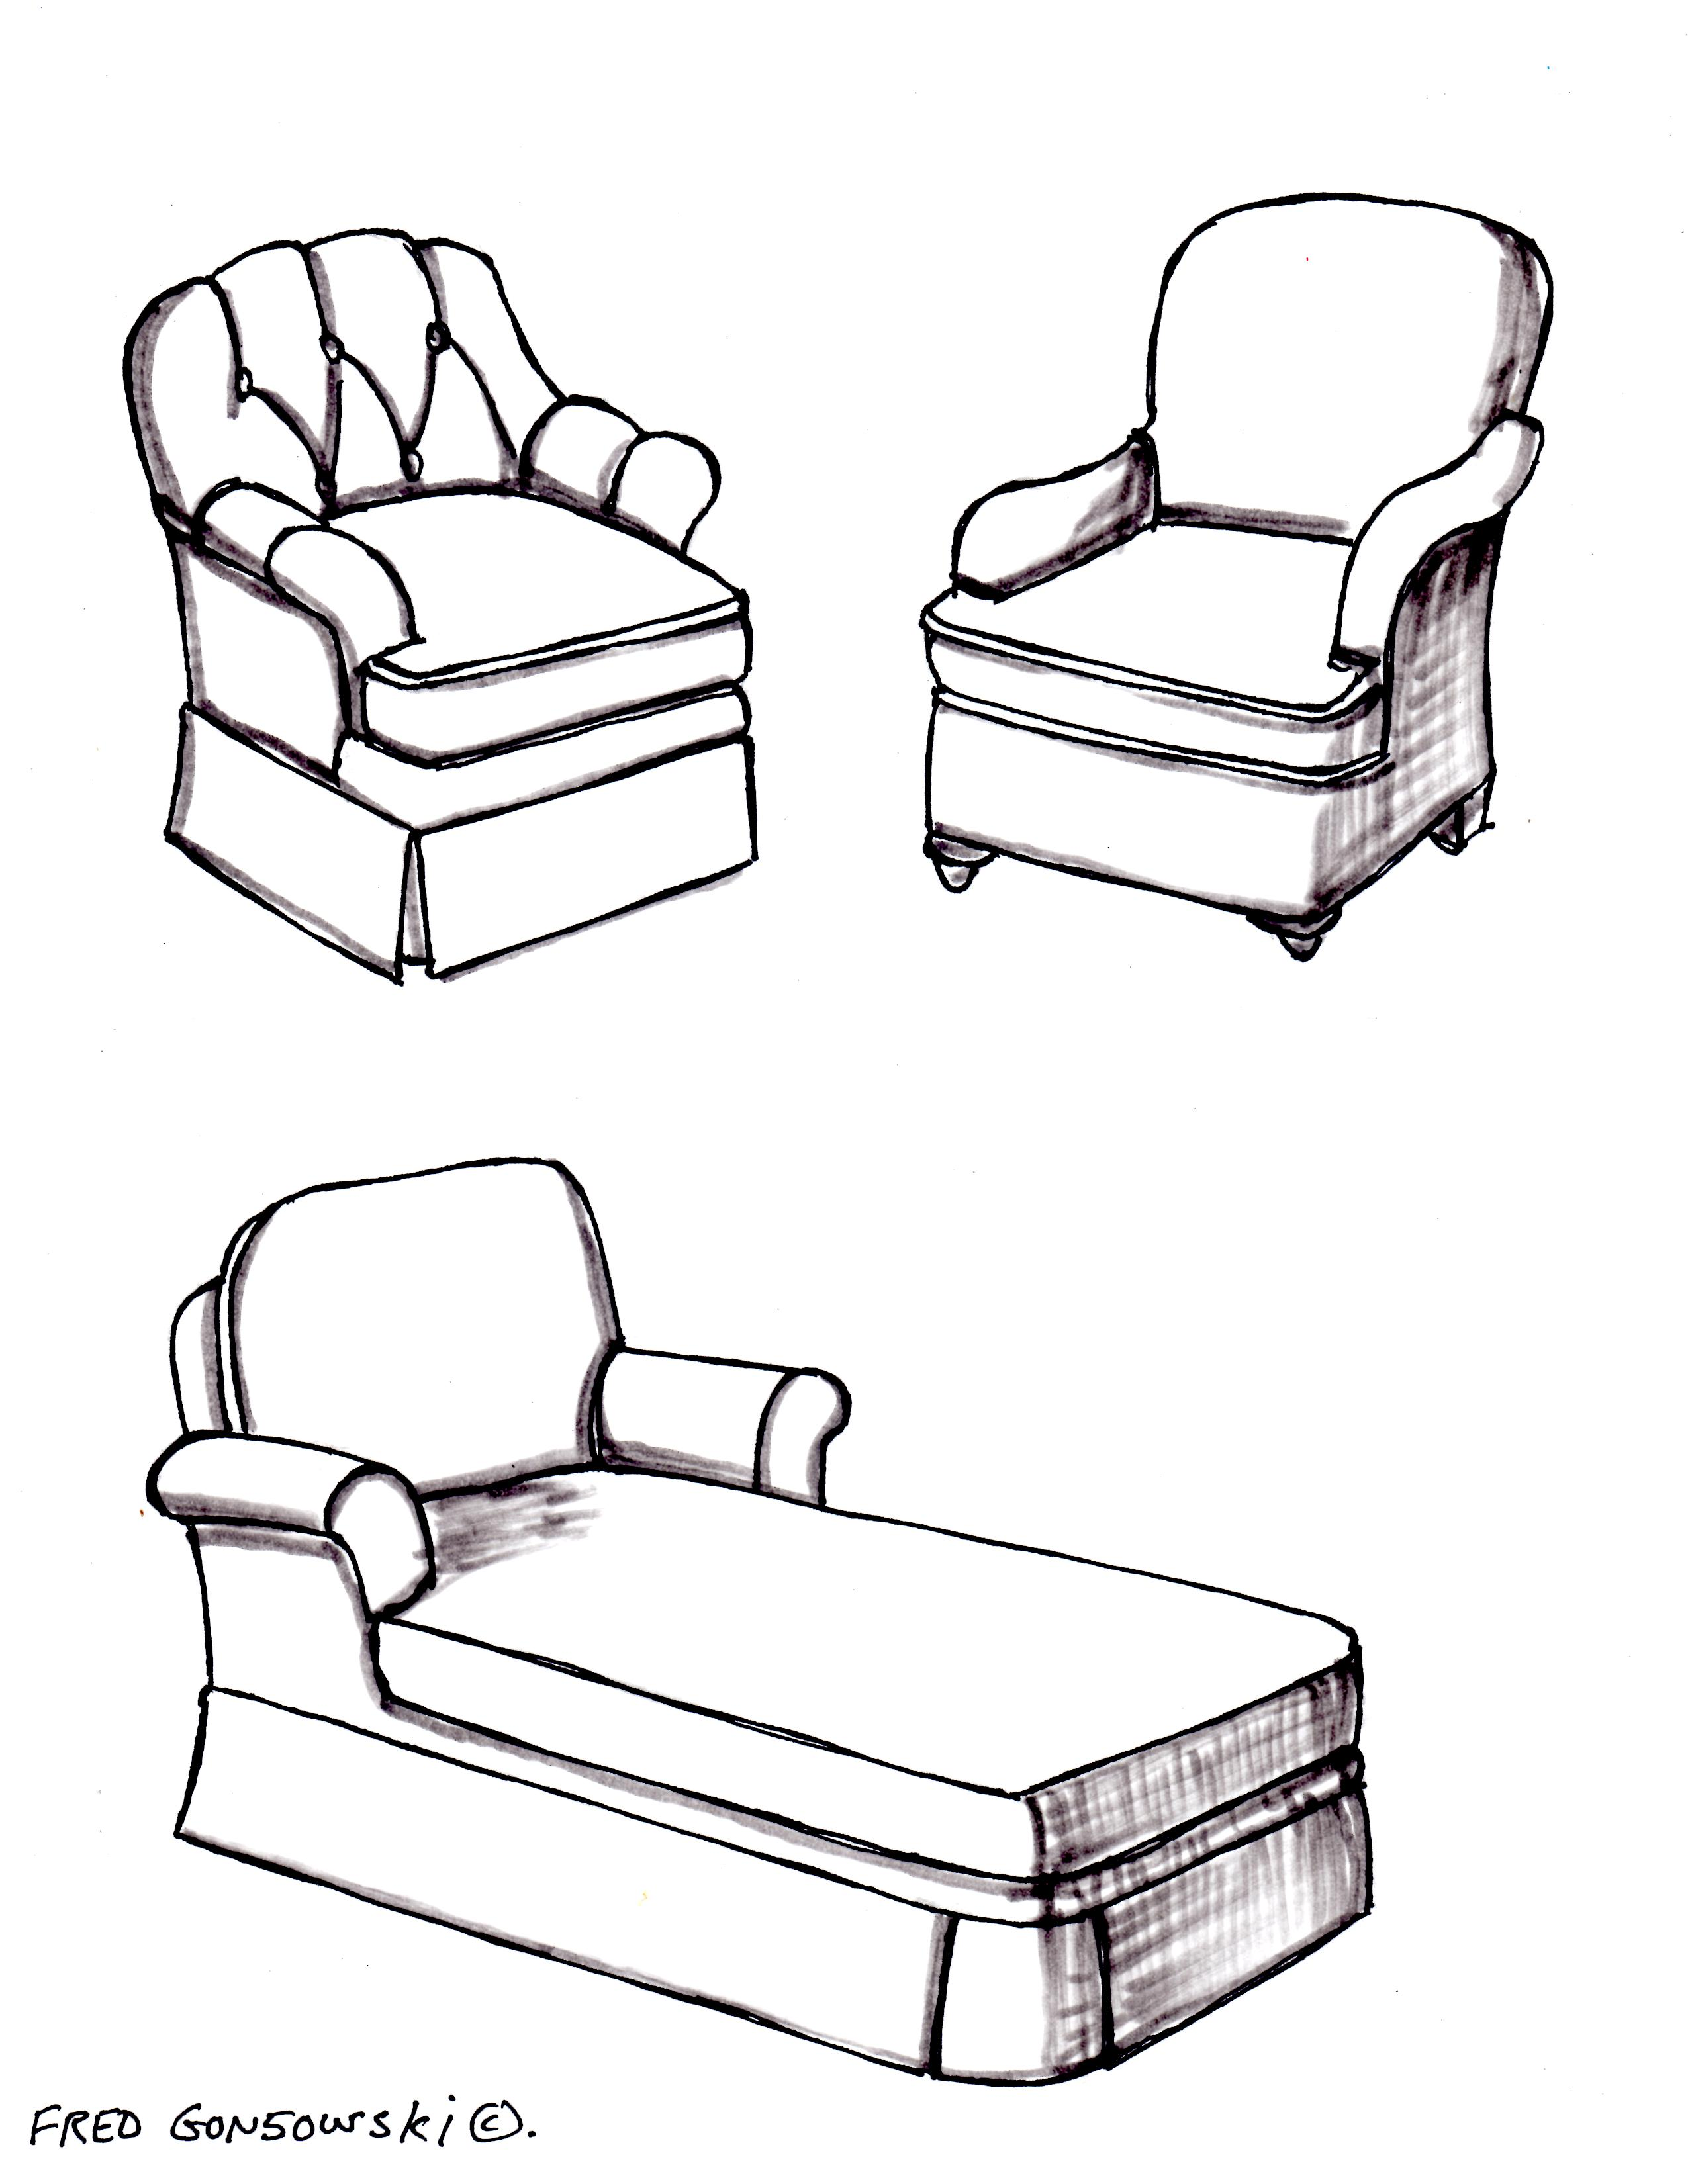 bedroom club chair best soccer mom chairs arranging furniture in a 15 foot wide by 25 long fred and chaise lounges are perfect additions to large